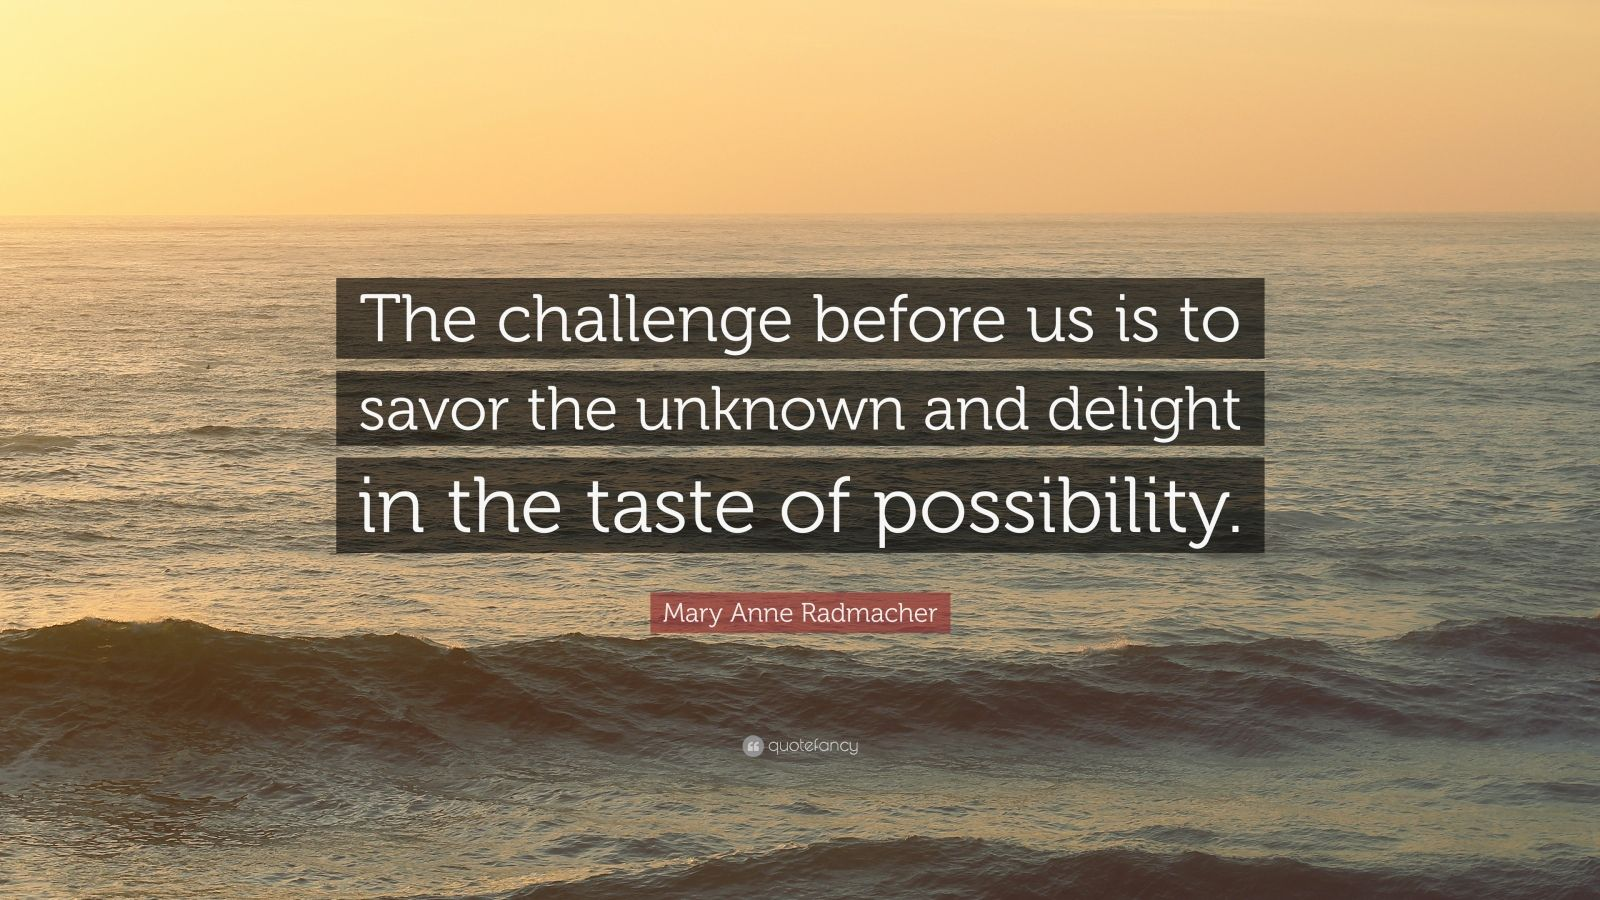 """Mary Anne Radmacher Quote: """"The challenge before us is to savor the unknown and delight in the taste of possibility."""""""